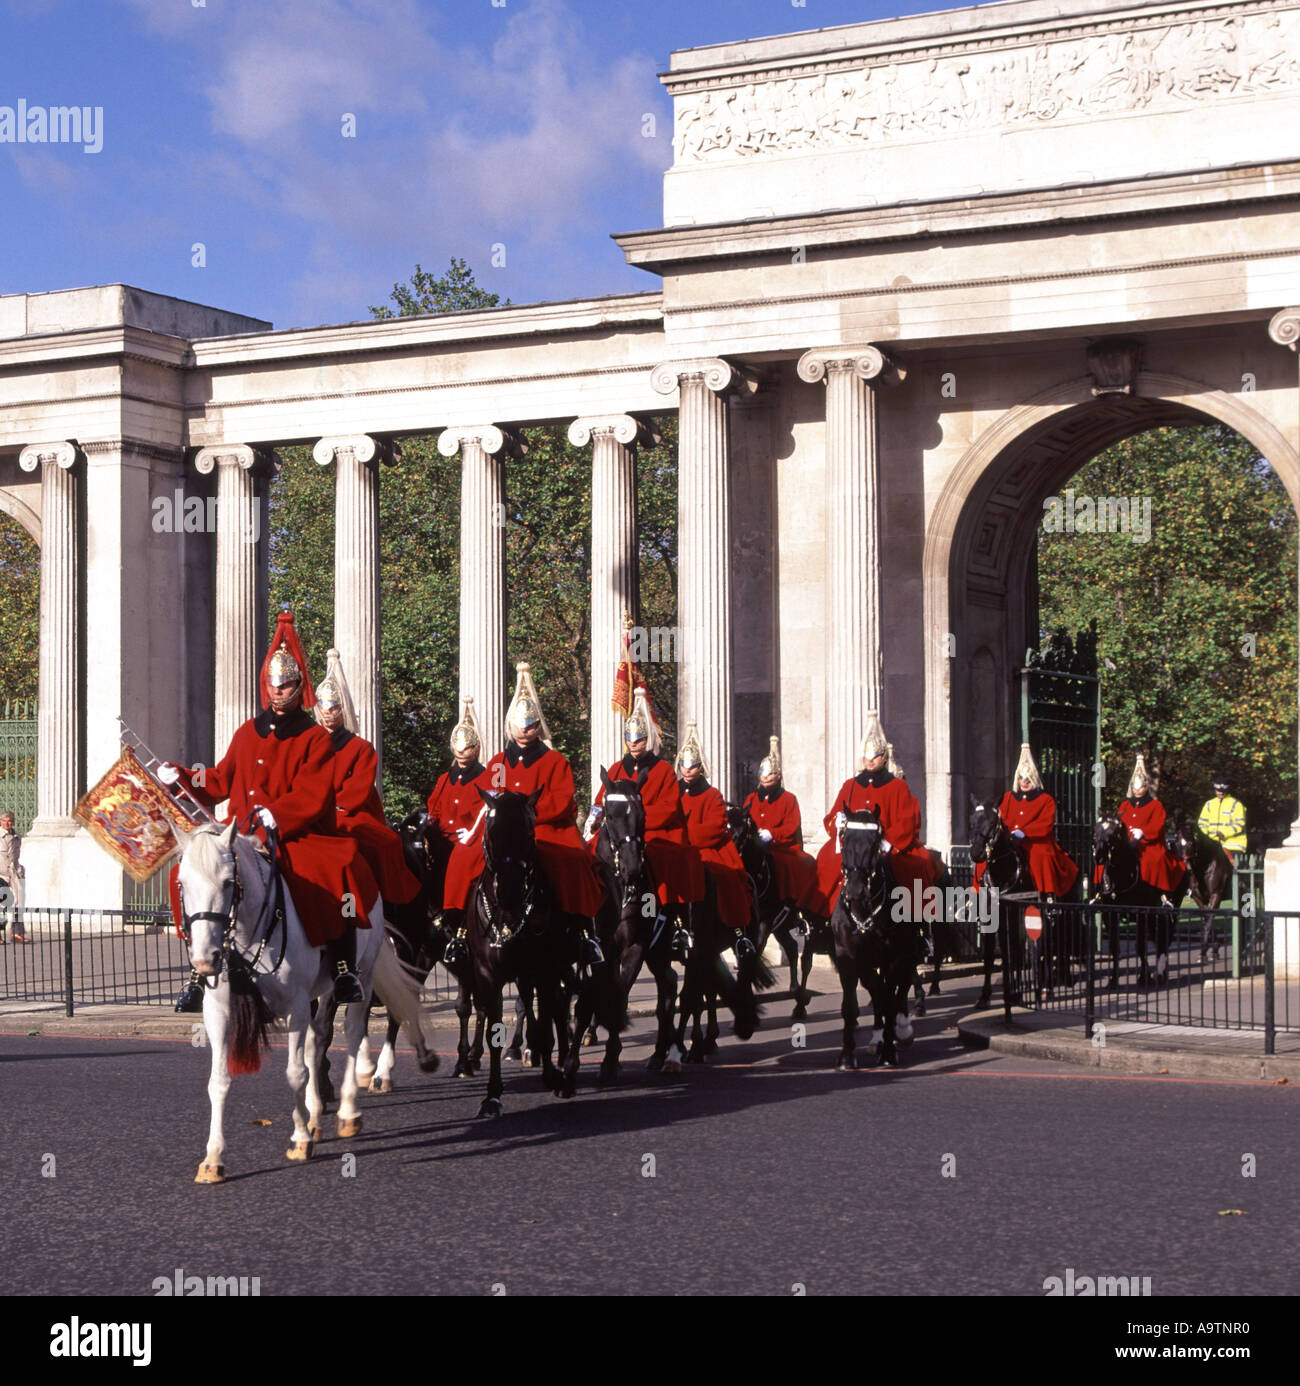 Hyde Park Corner The Household Cavalry Mounted Regiment on way to changing guard duty - Stock Image